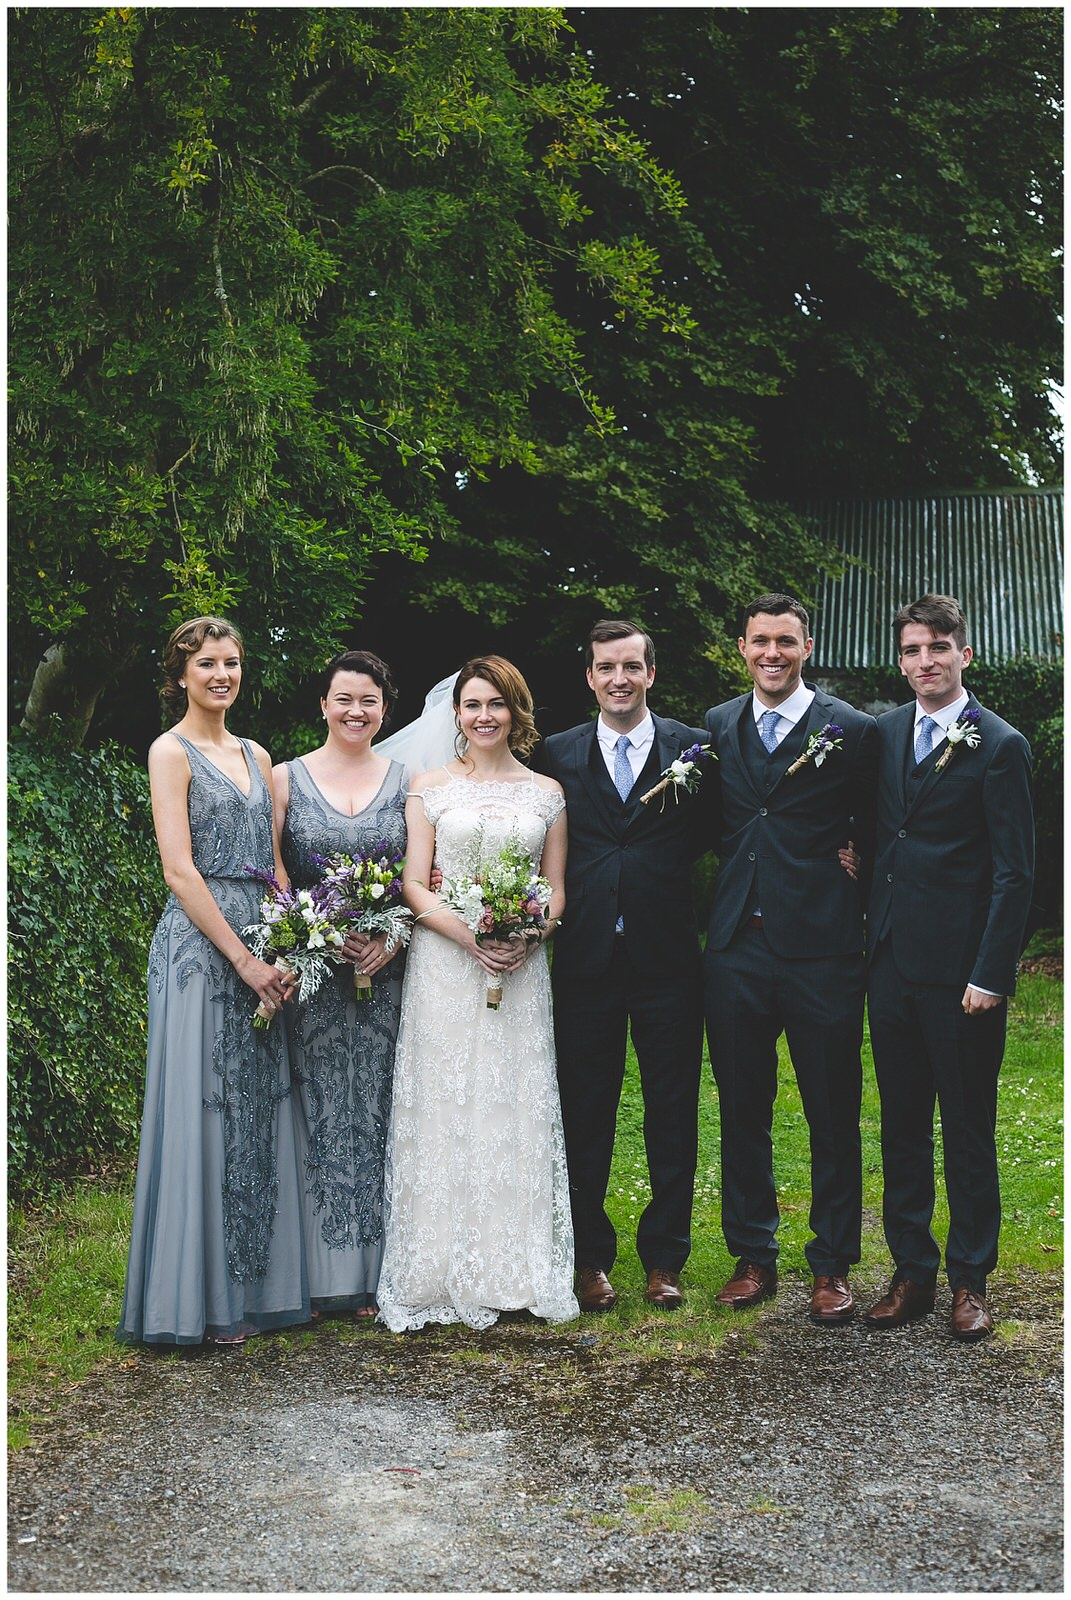 Casual outdoor bridal party portraits